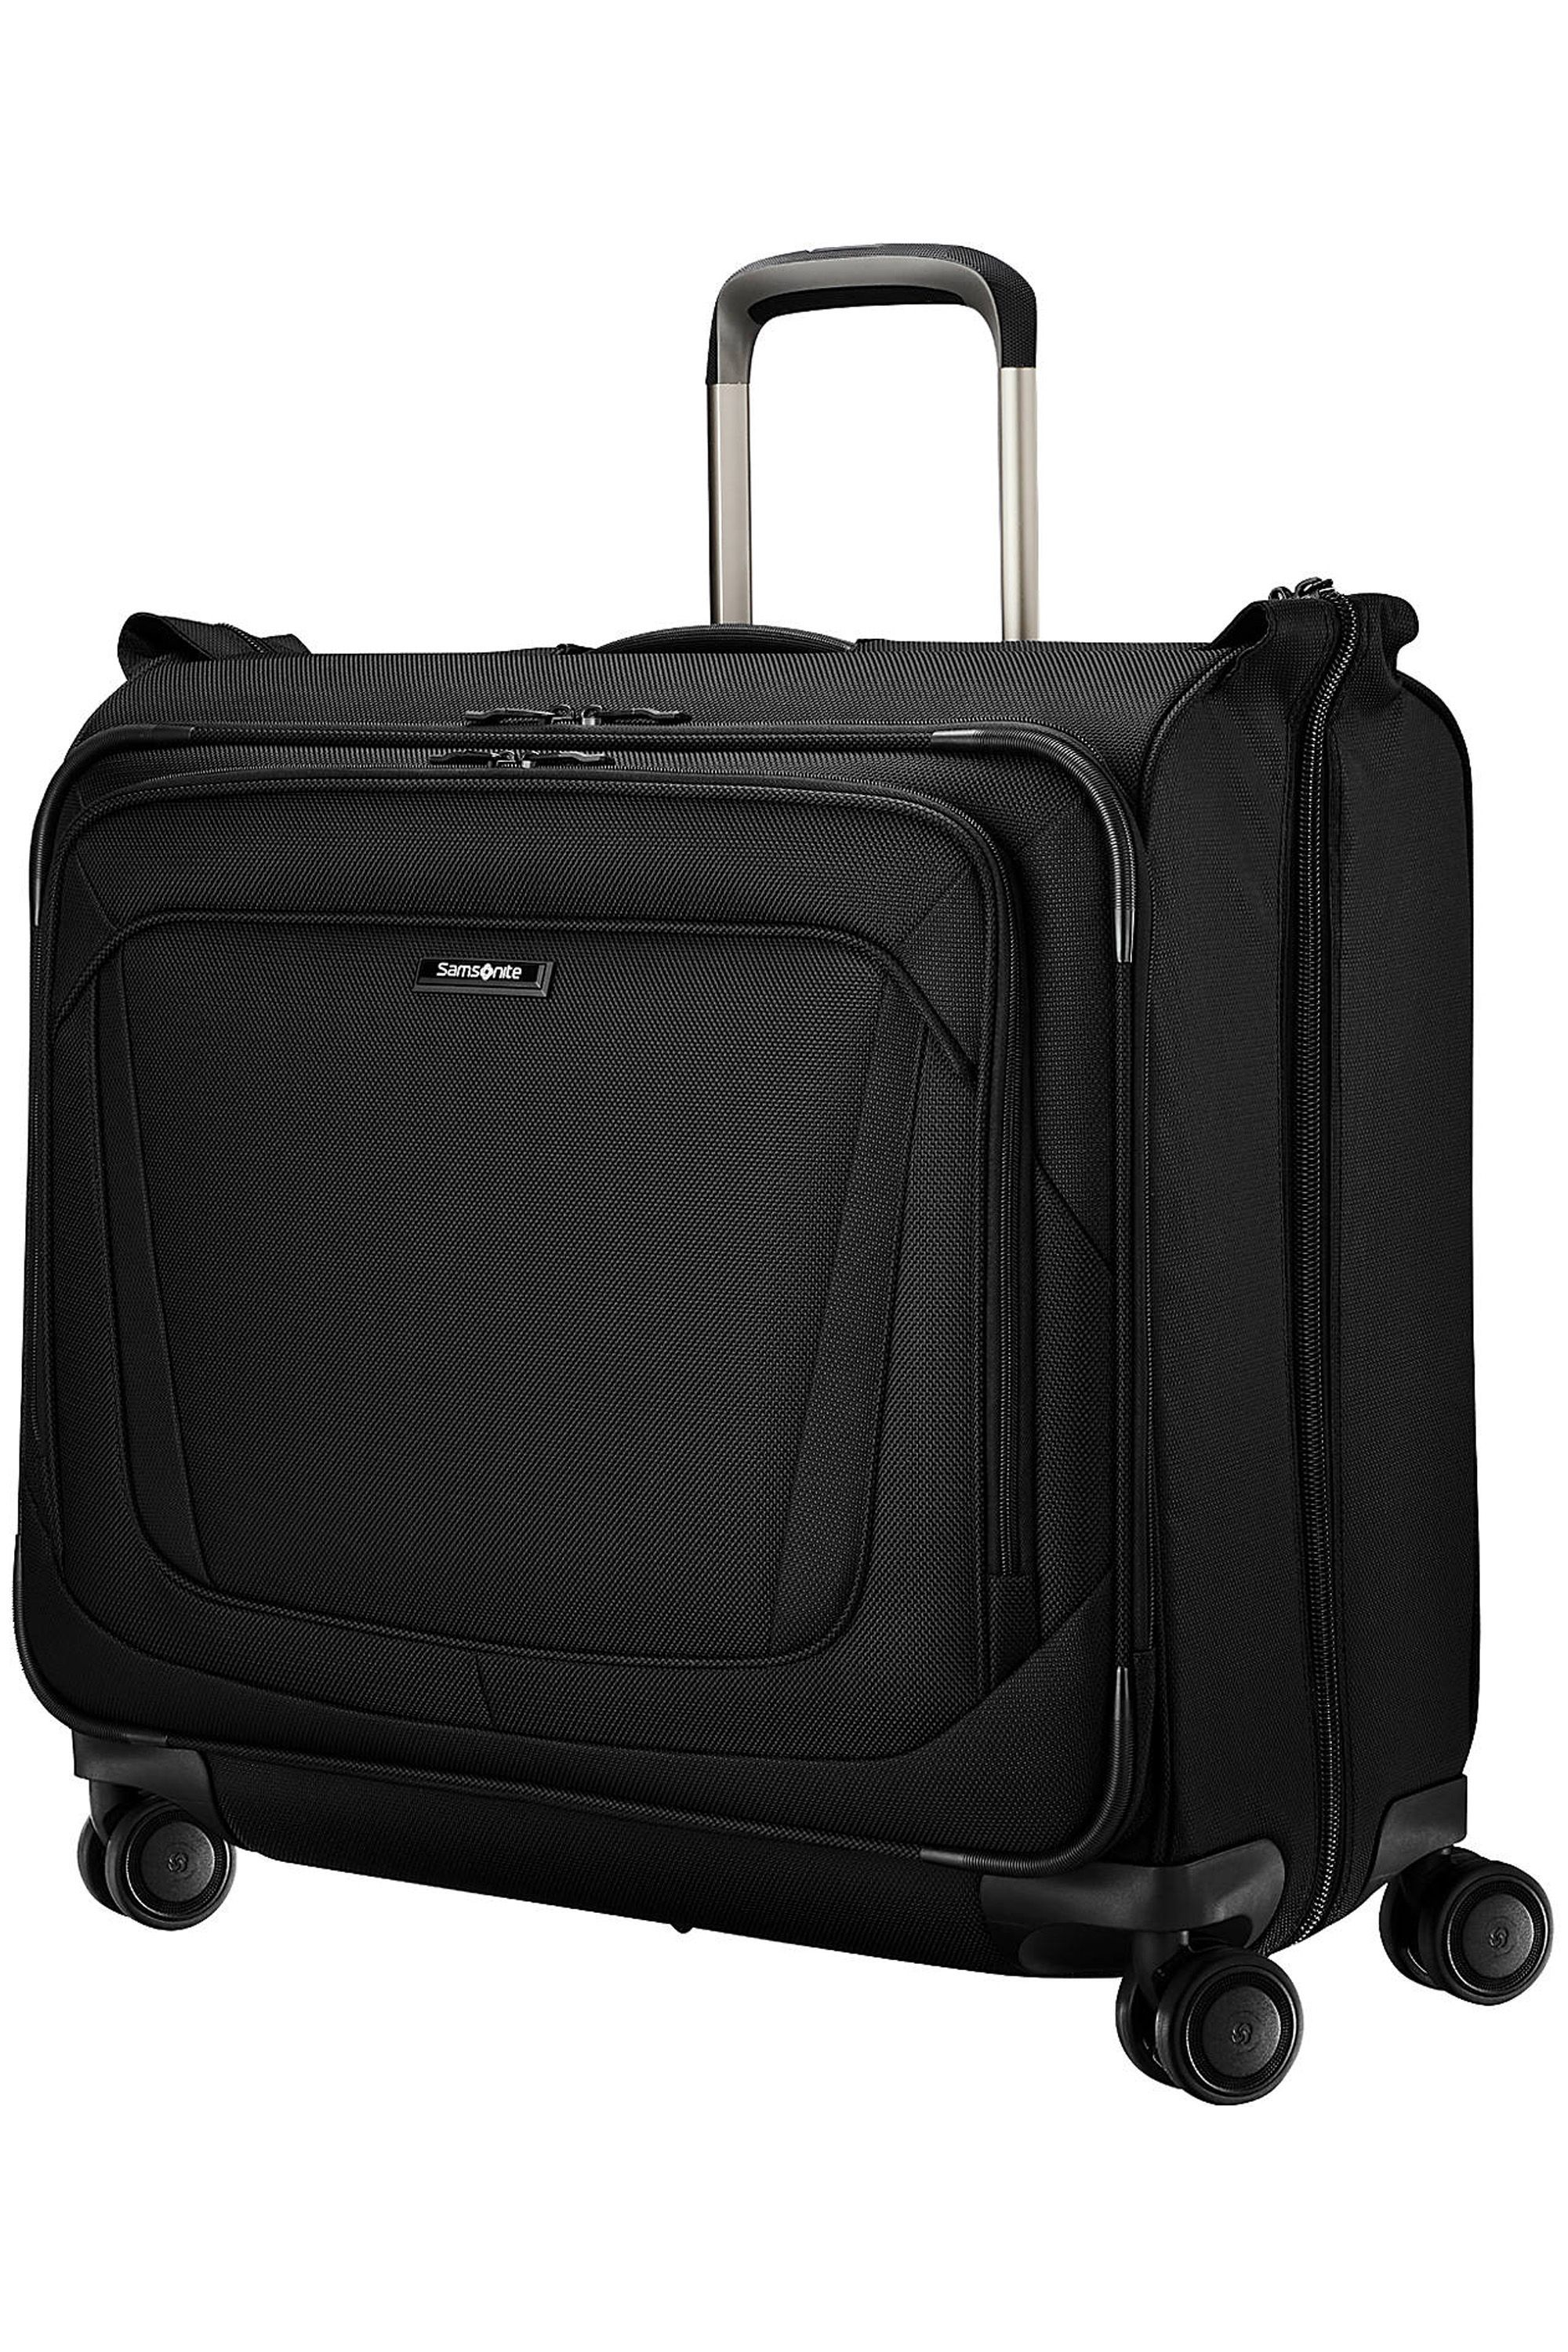 9 Best Garment Bags For Travel 2020